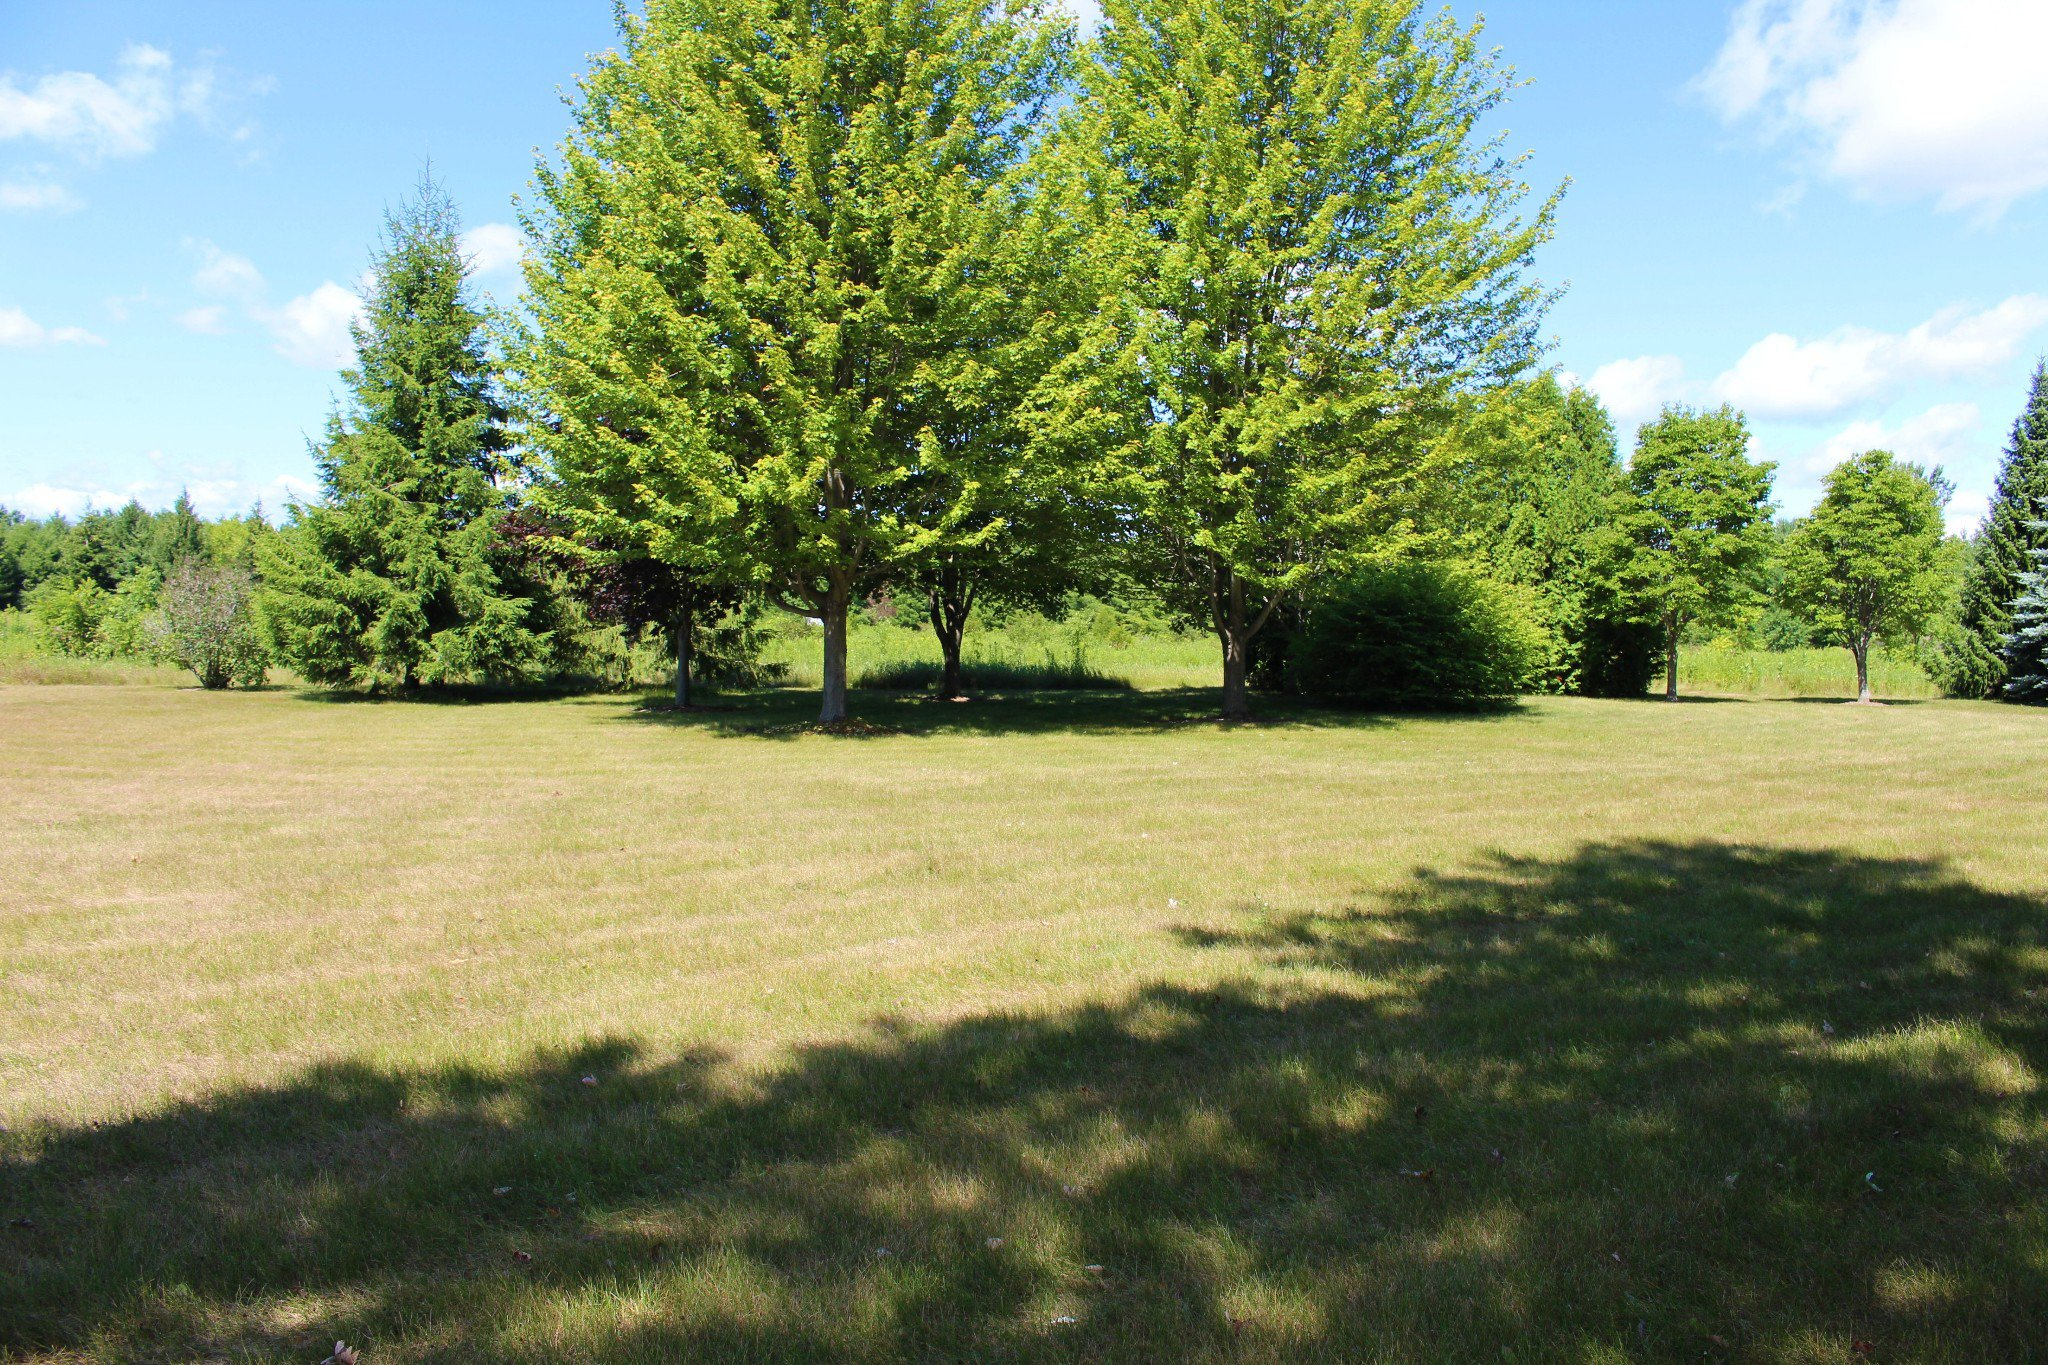 Photo 48: Photos: 159 Nawautin Drive in Grafton: Residential Detached for sale : MLS®# 40012652